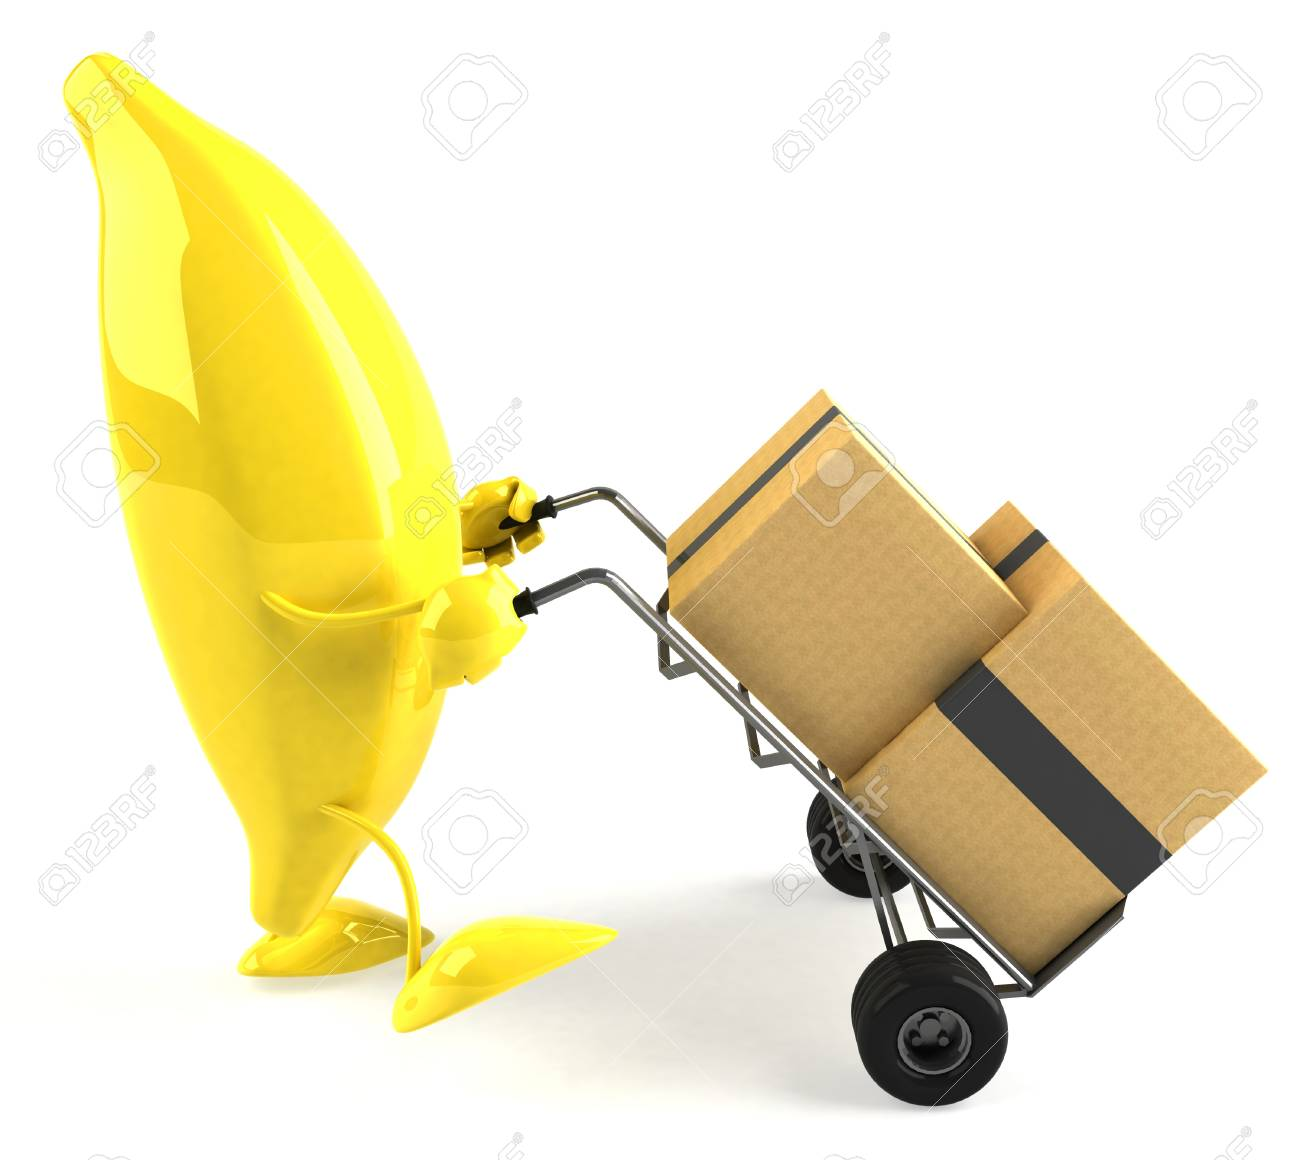 Cartoon Banana Pushing Trolley With Boxes Stock Photo, Picture And ...